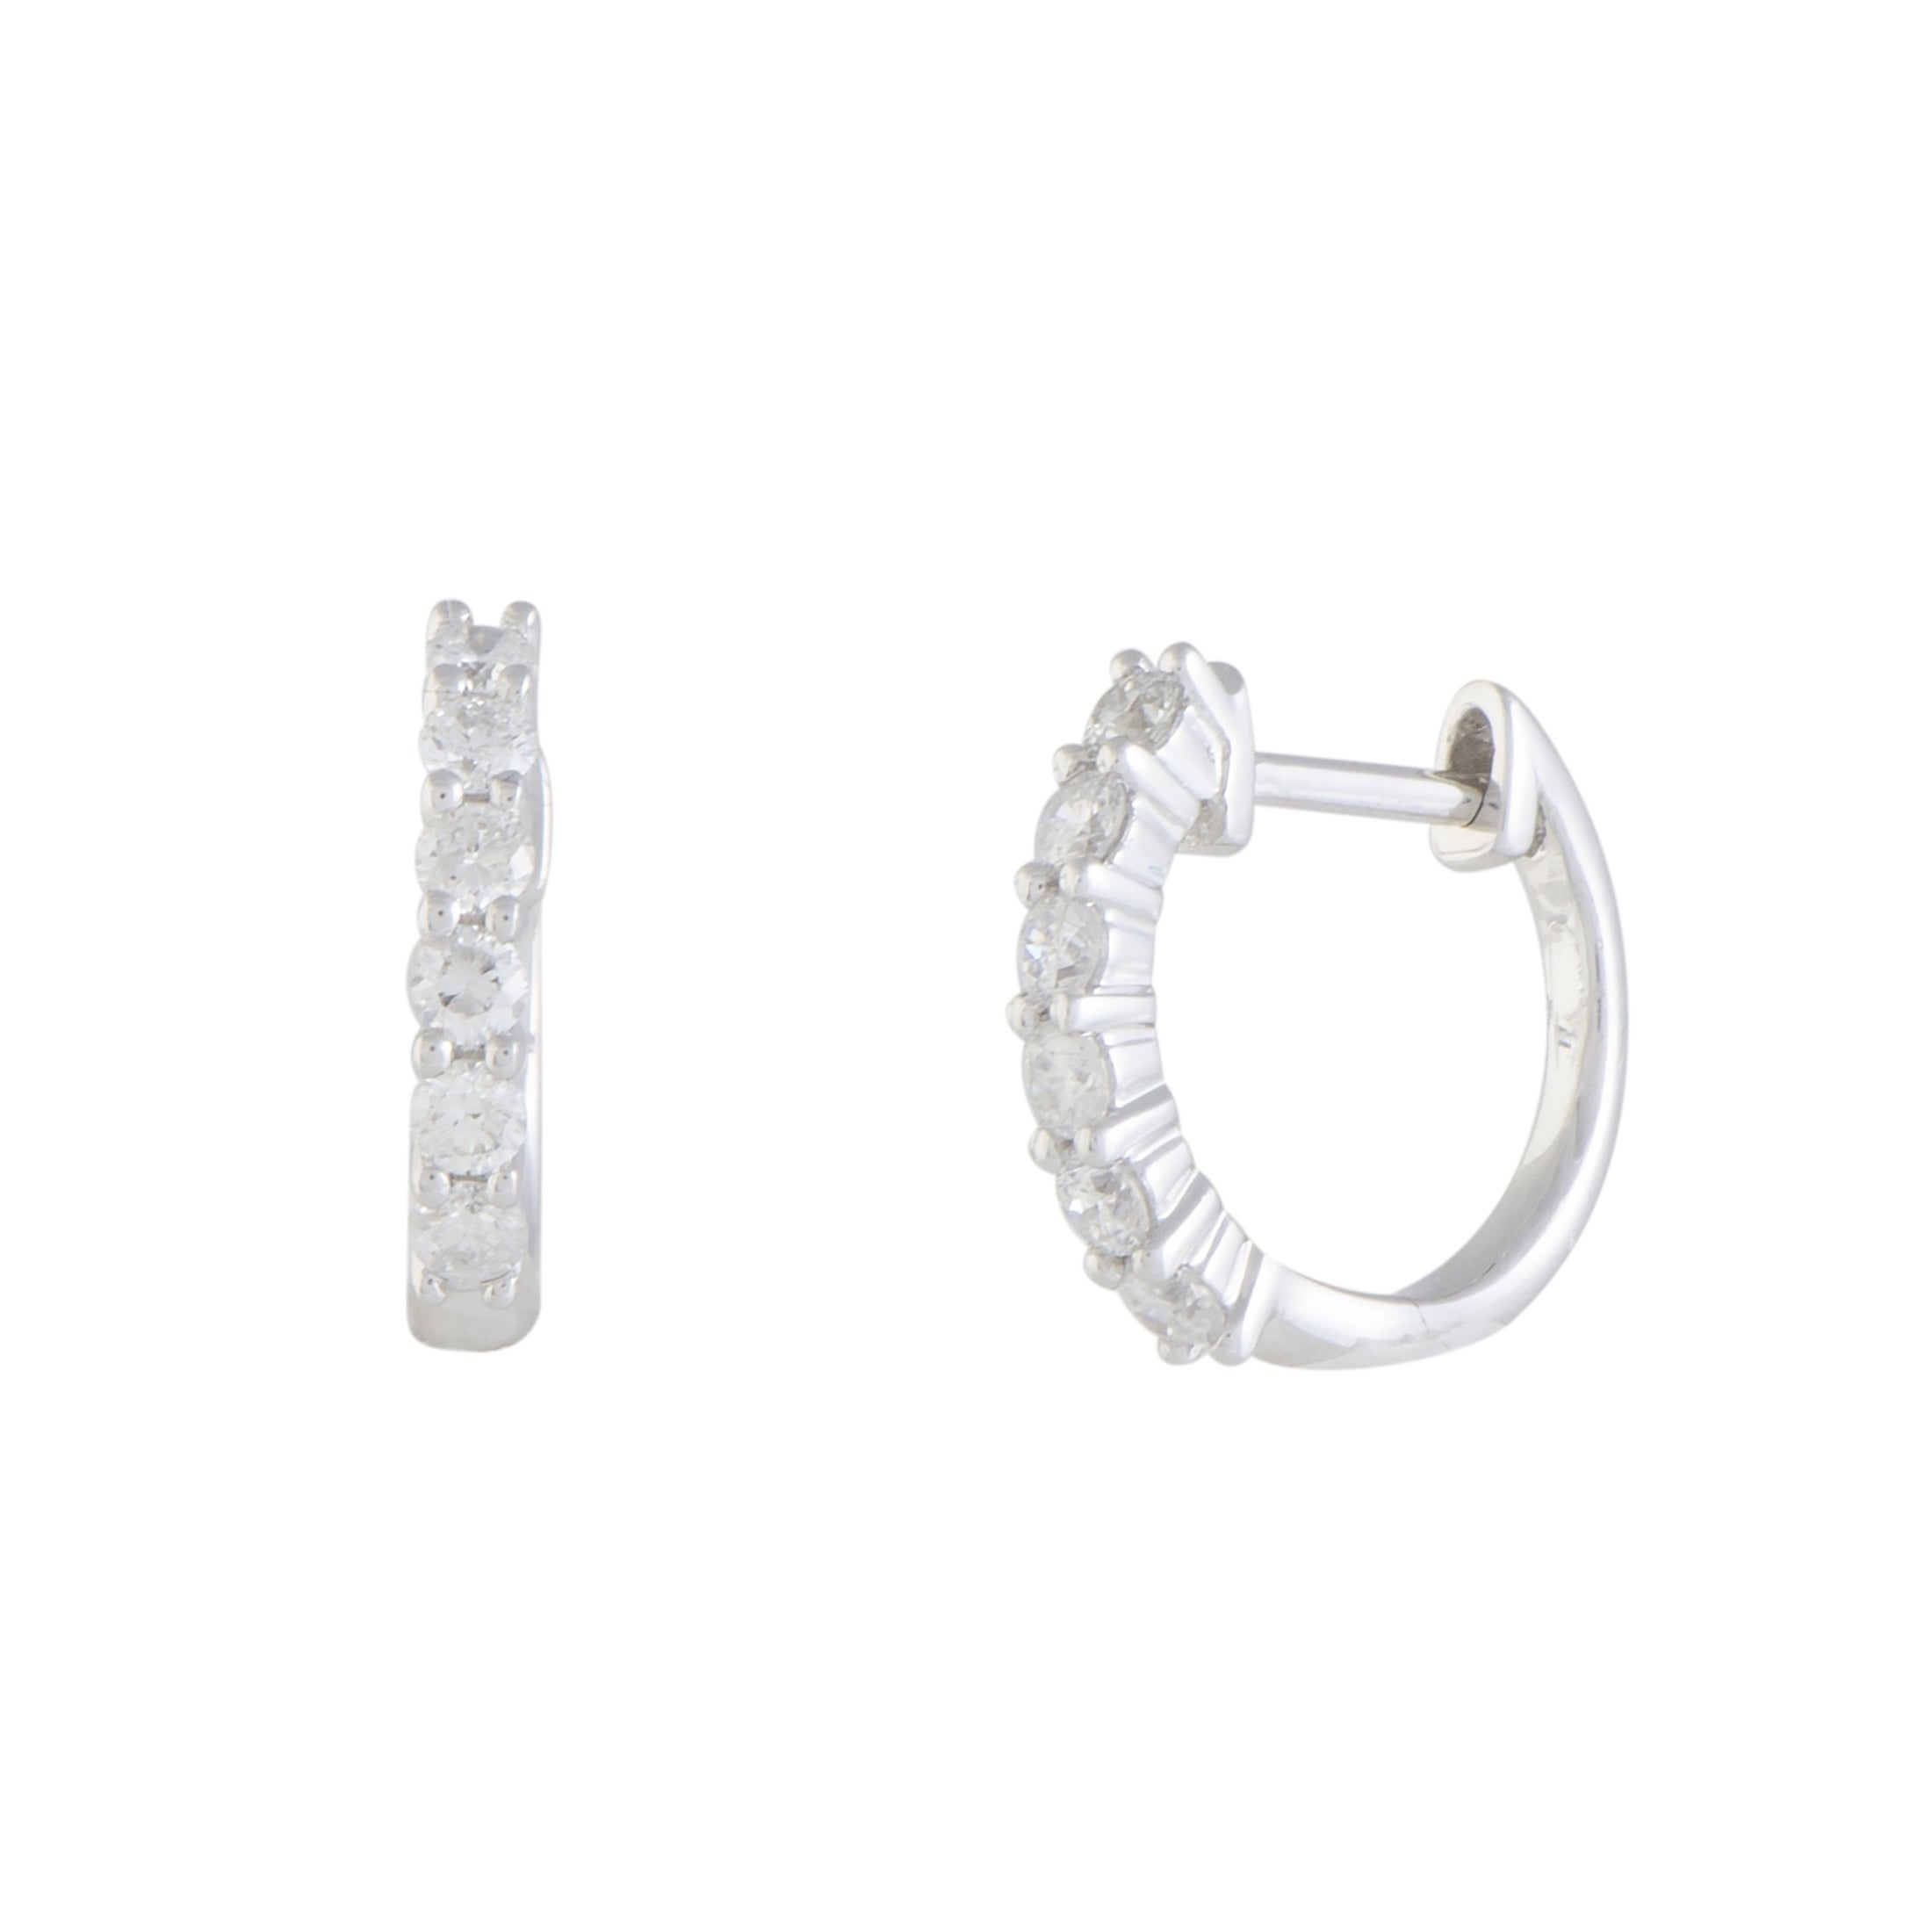 50ct Small White Gold Diamond Hoop Earrings